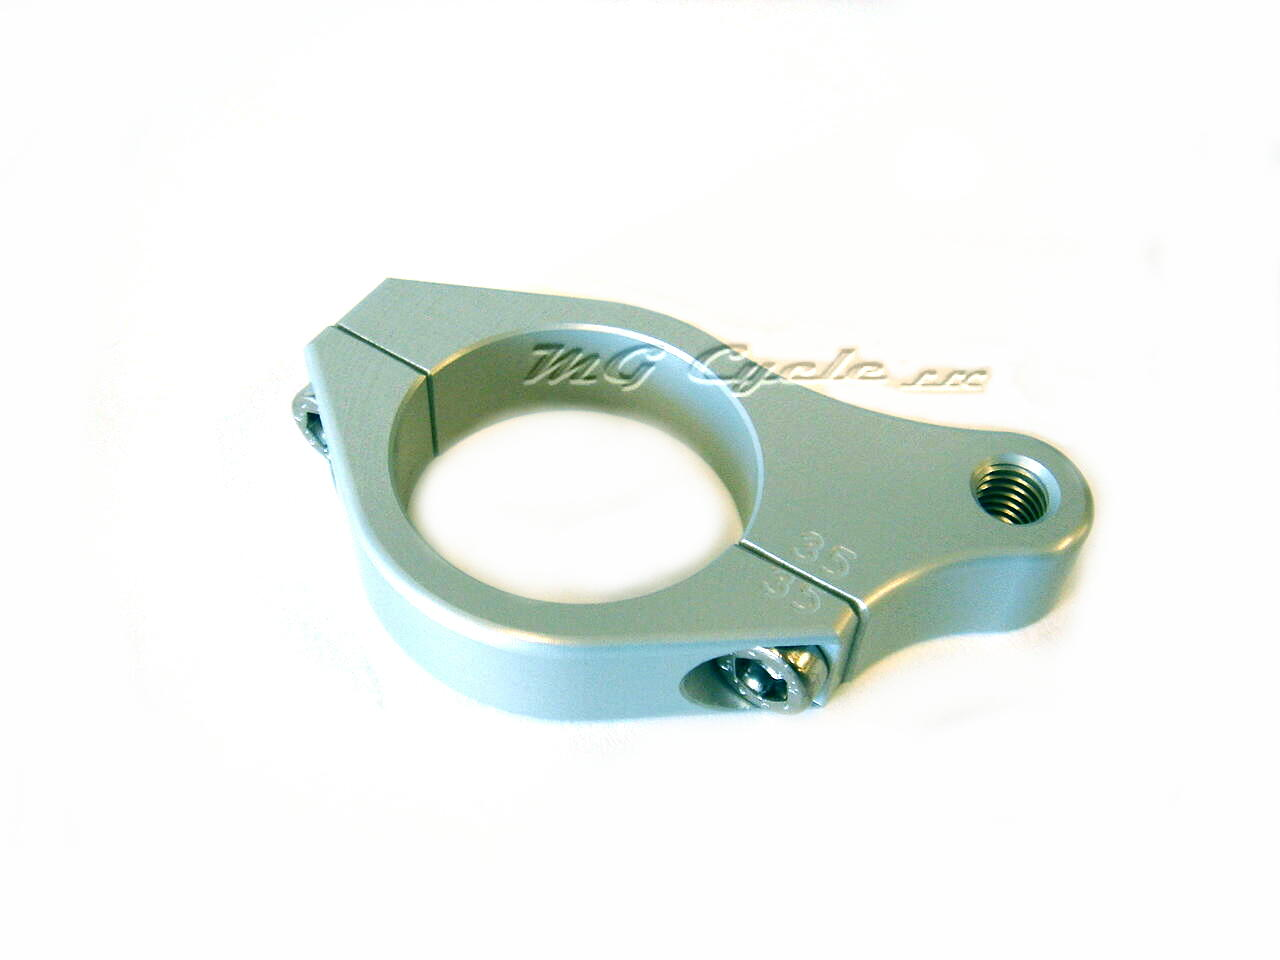 Steering damper attachment clamp for 35mm fork